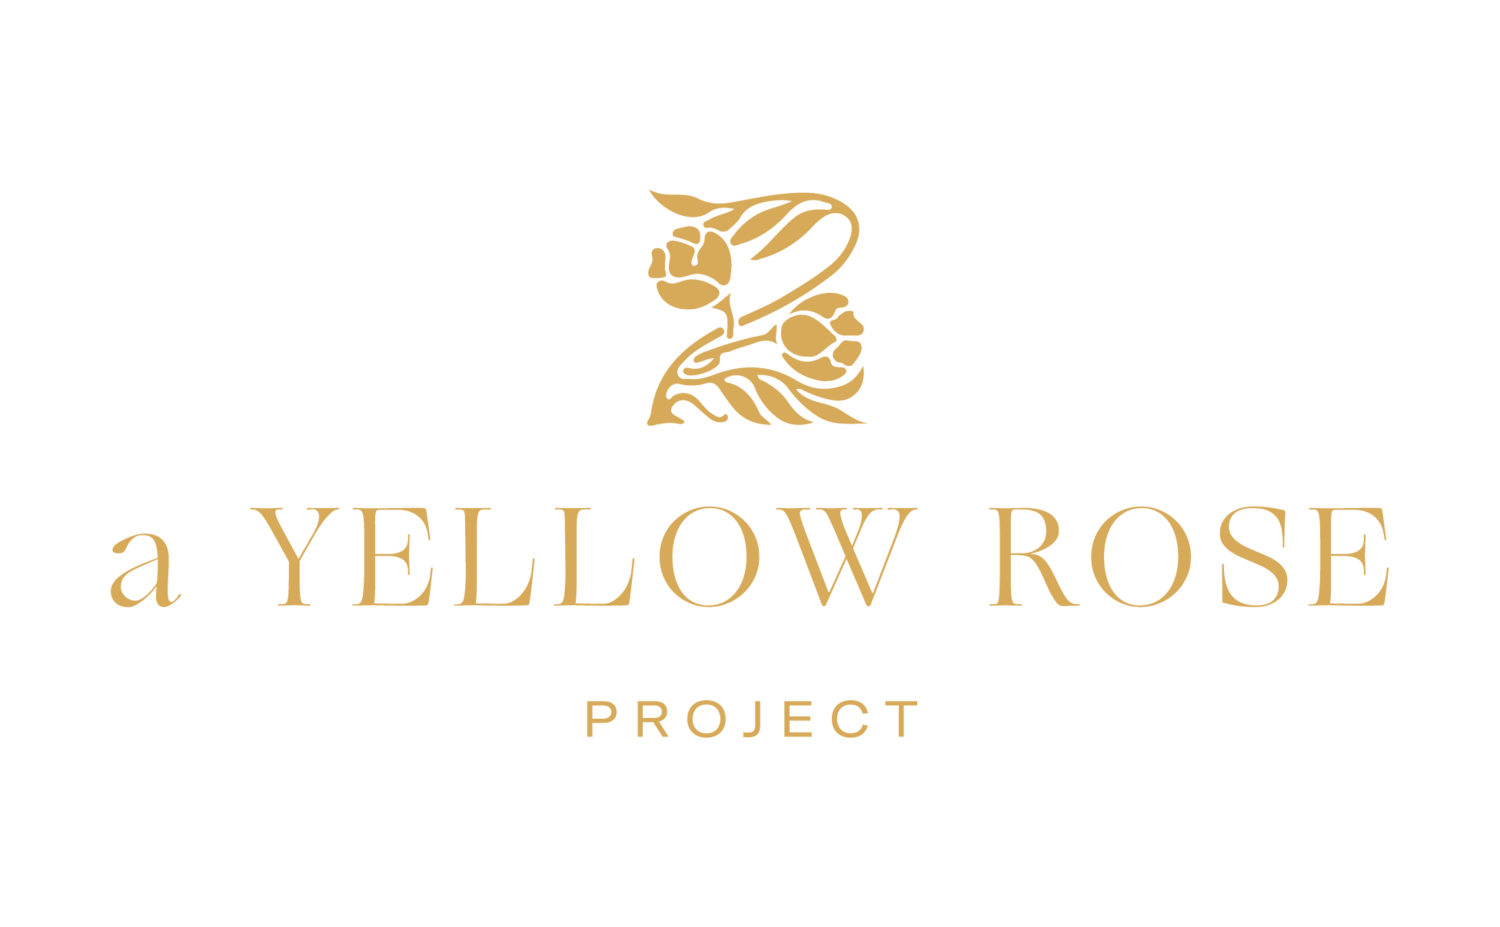 A Yellow Rose Project